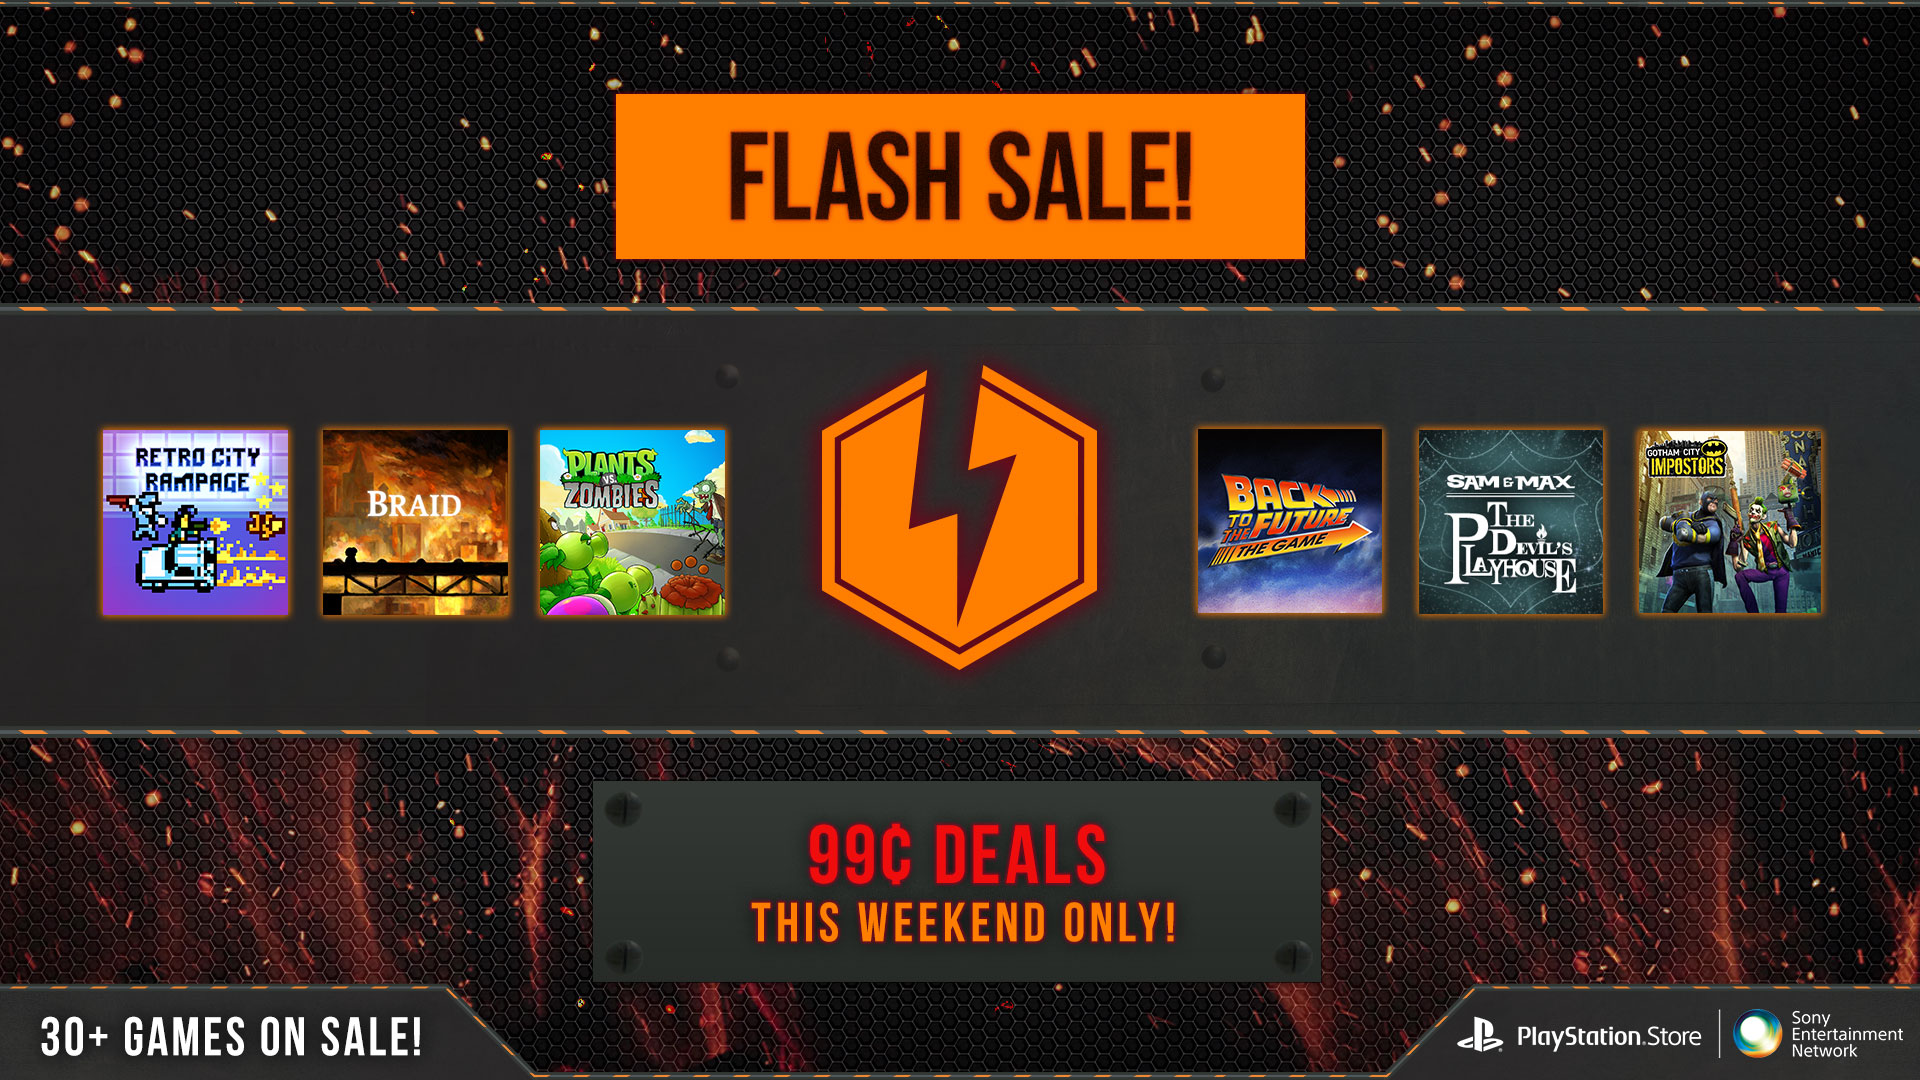 Sony_Playstation_Flash_Sale